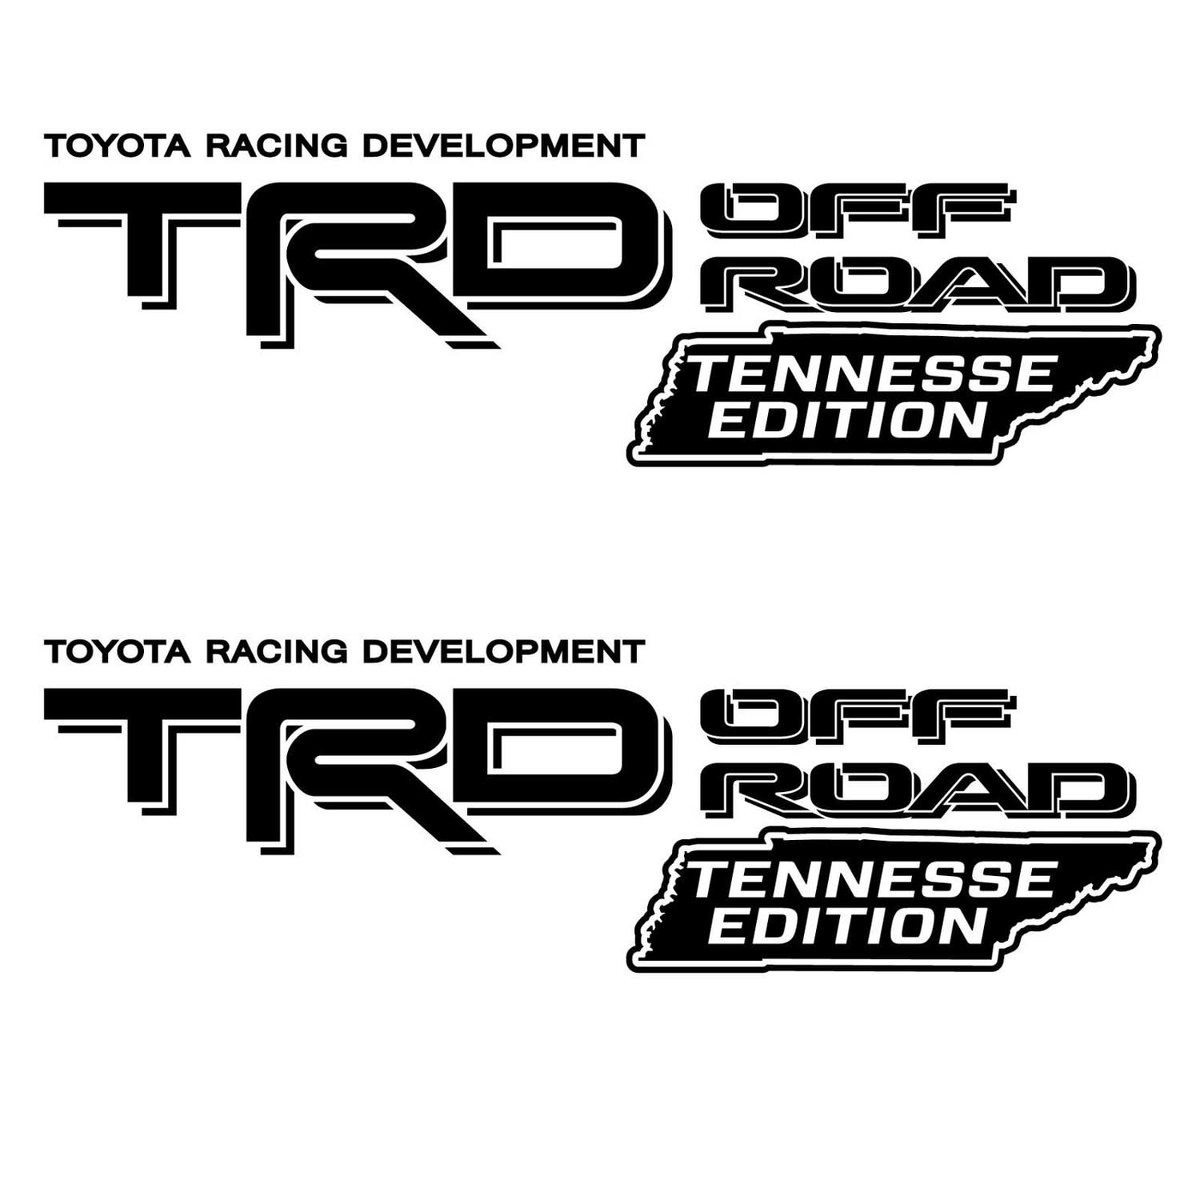 Product Trd Off Road Bed Decal Sticker Tennessee Edition